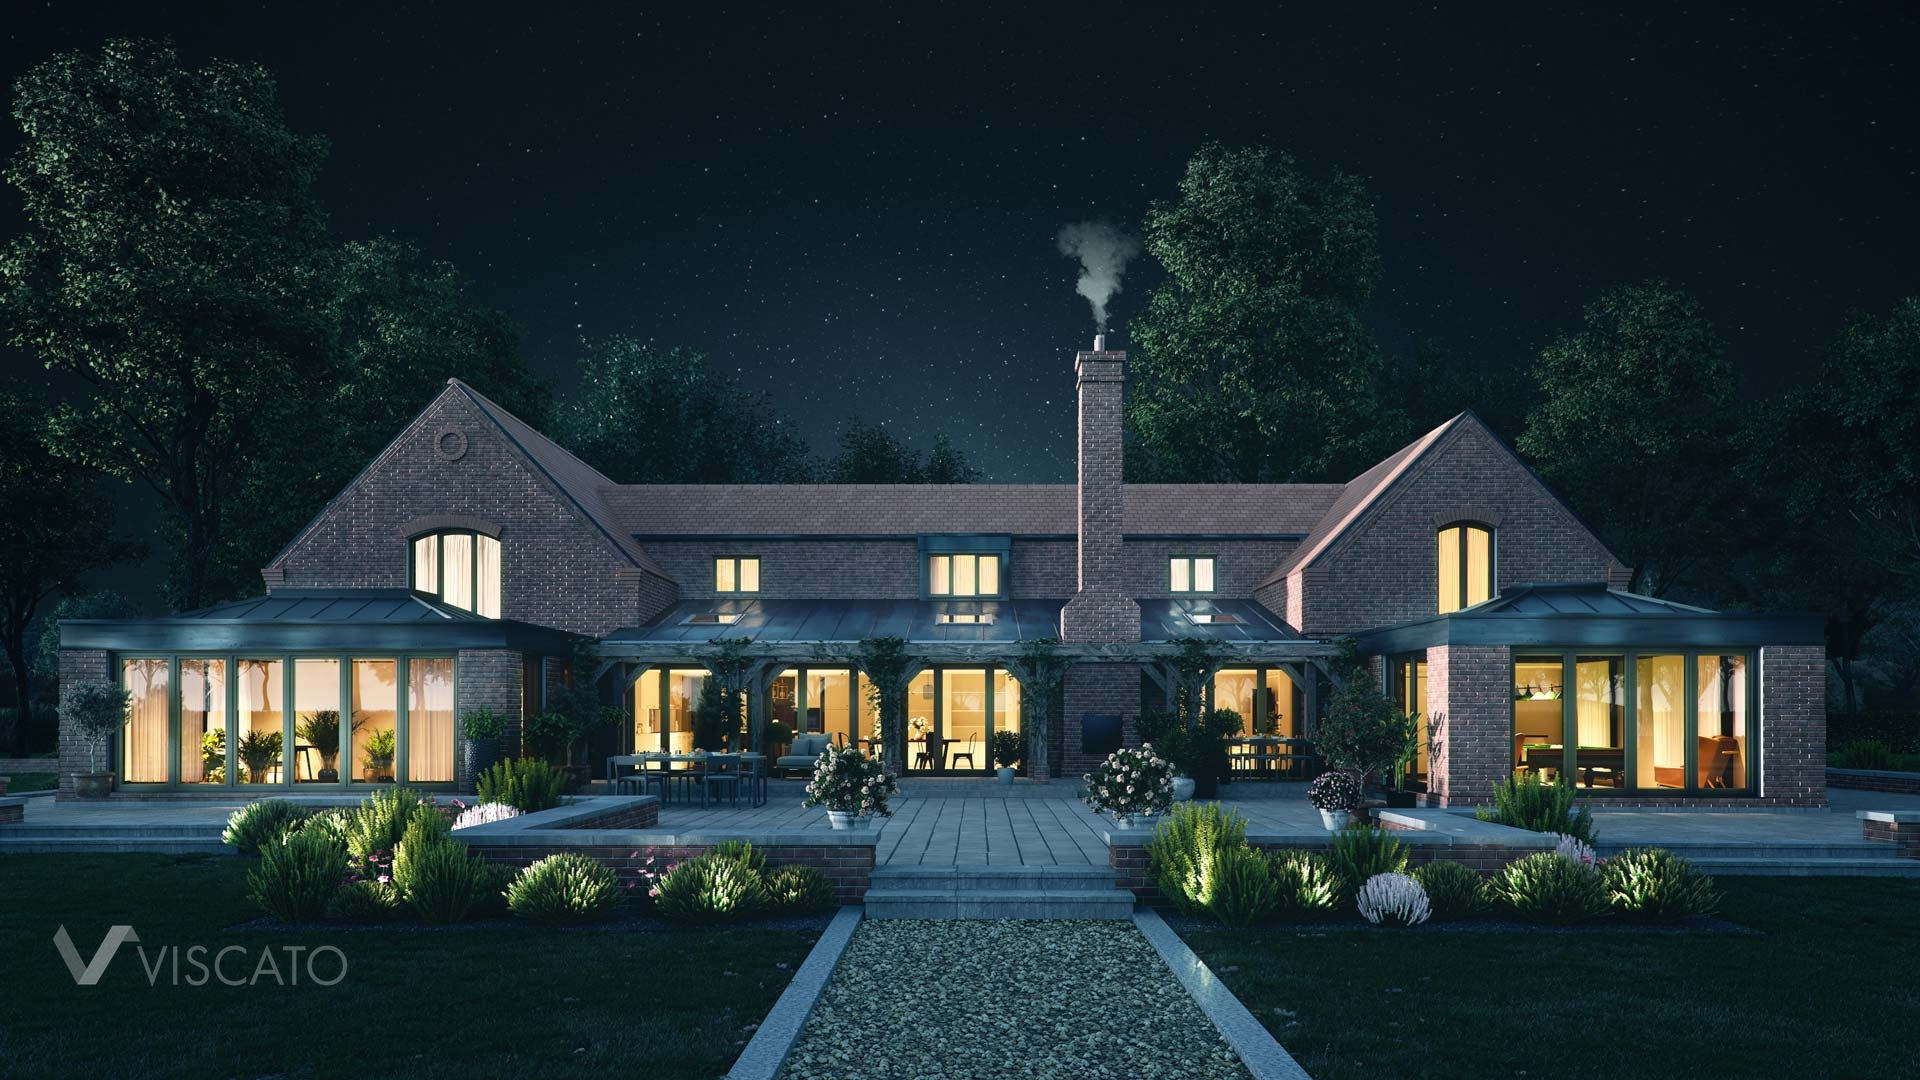 Barn house visualization in the night time, Viscato